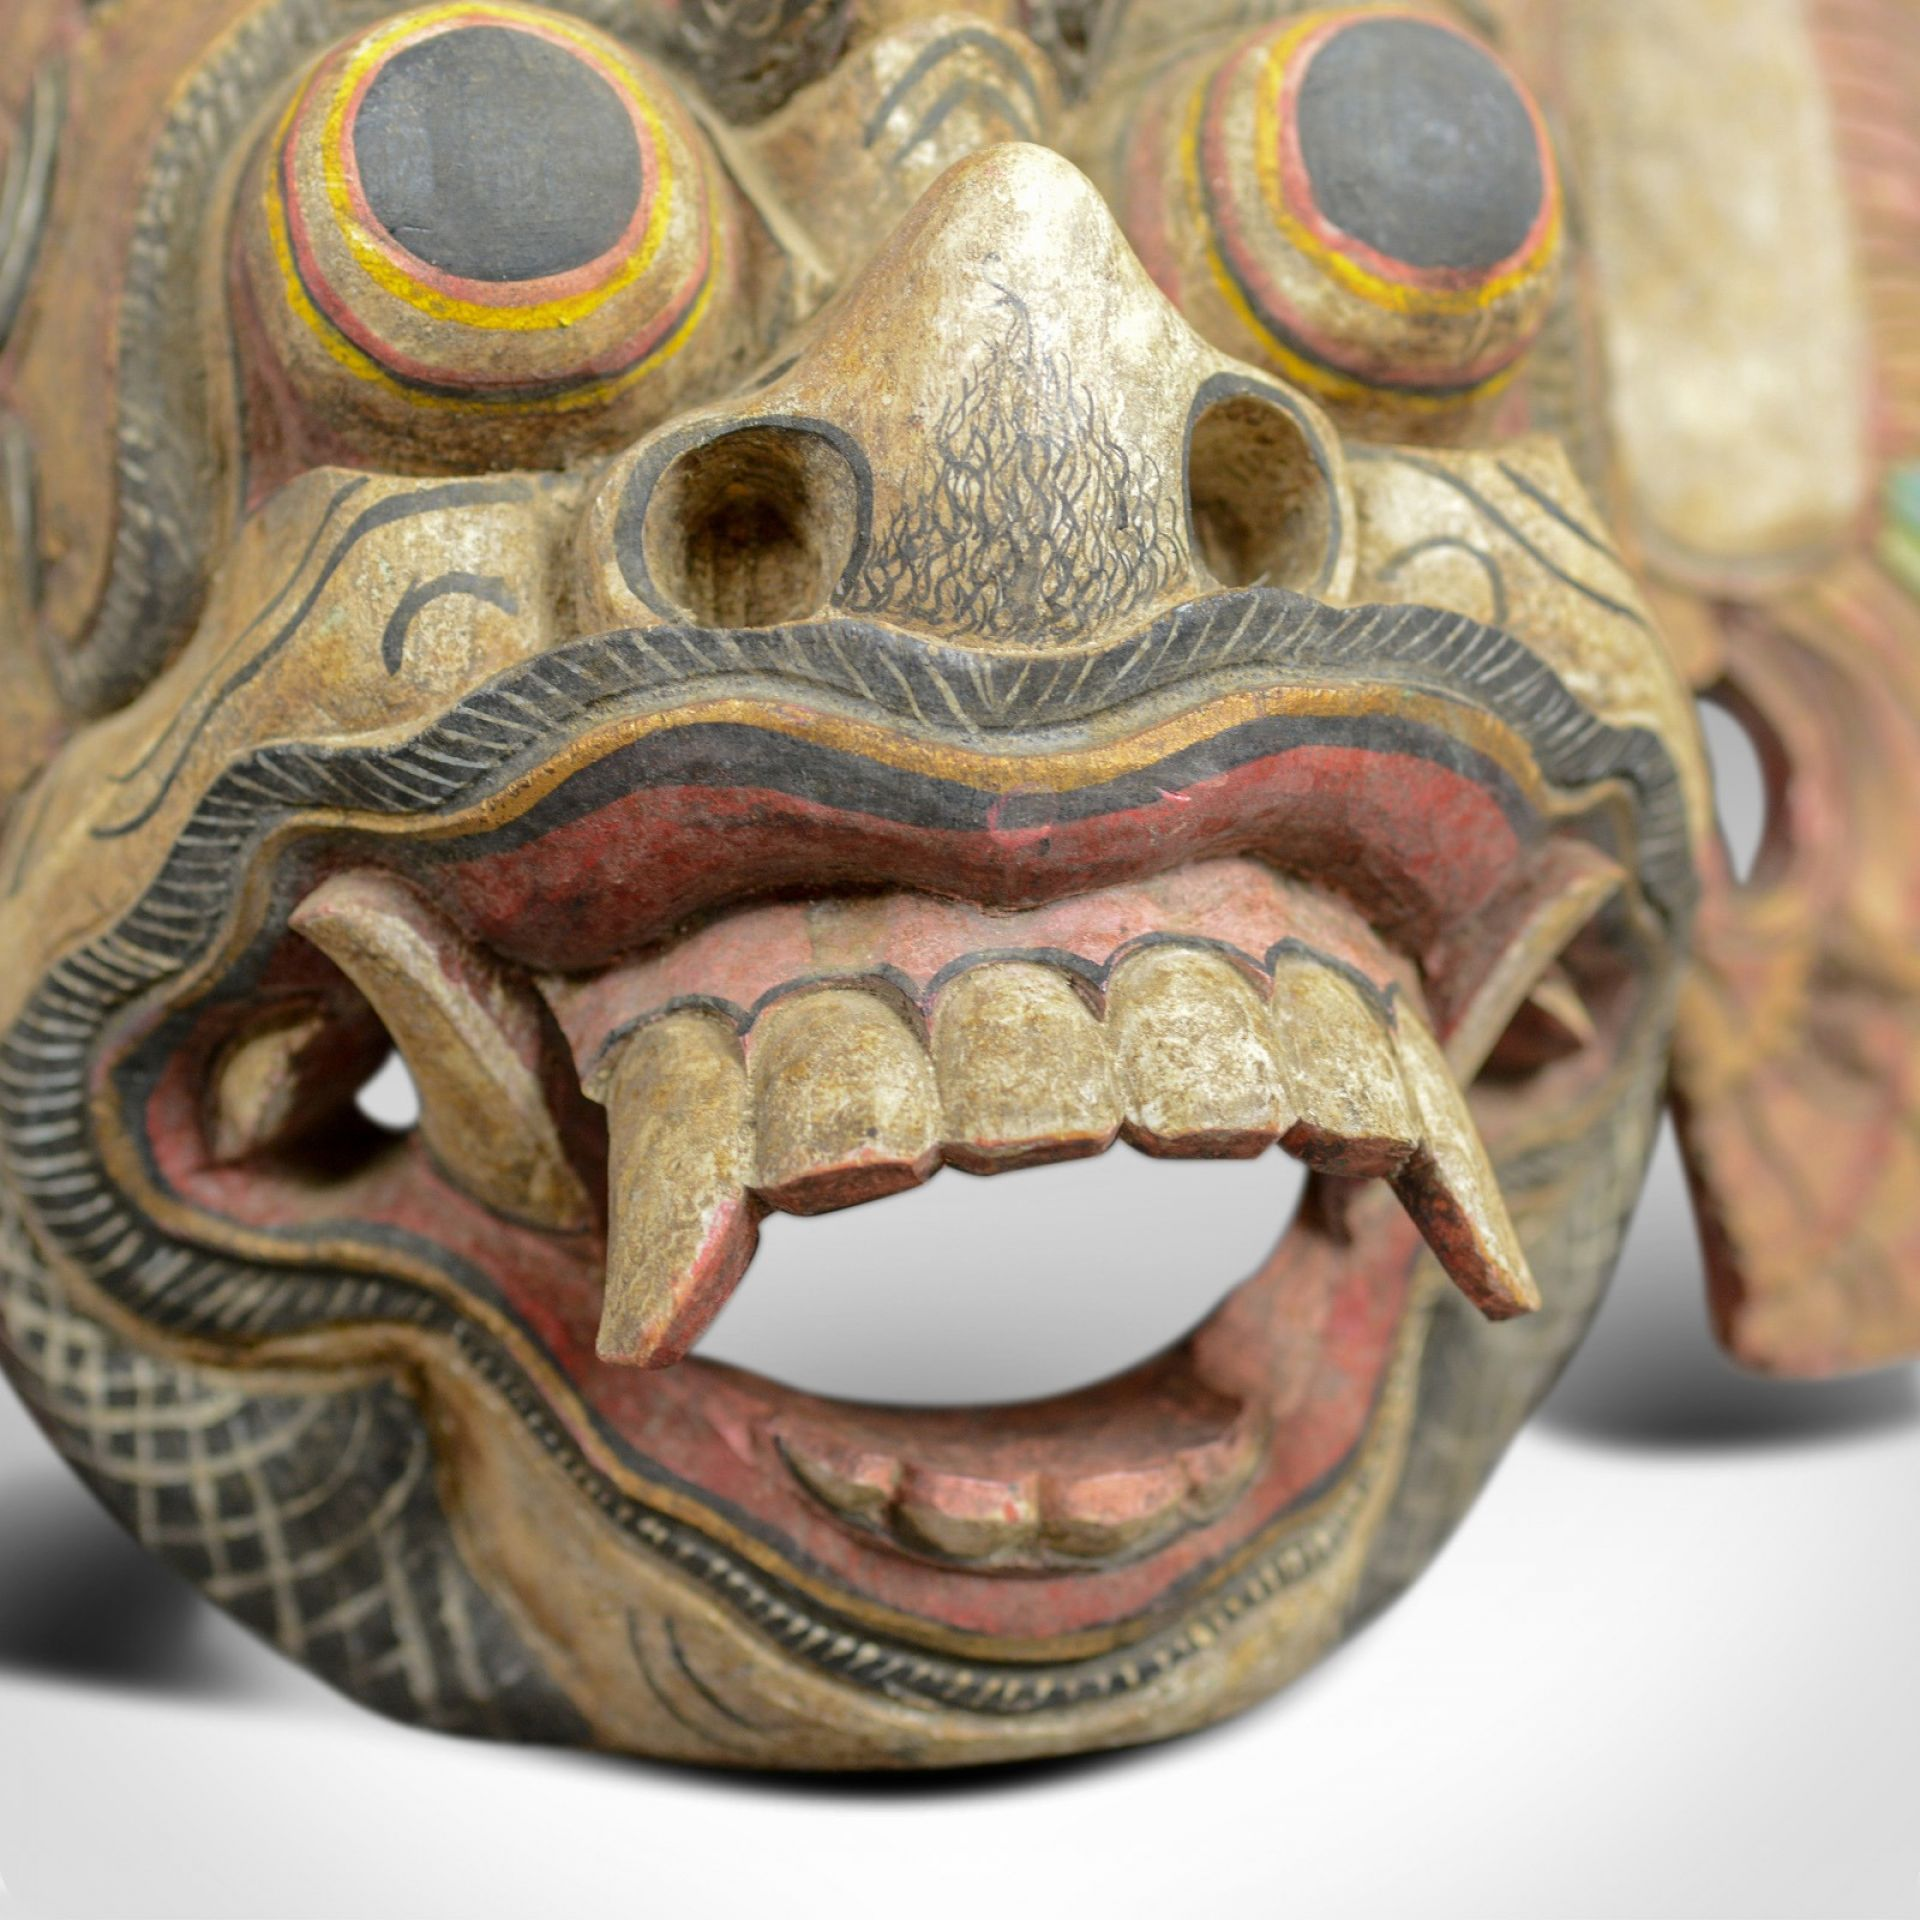 This is a Balinese 'Barong' carved mask. A decorative painted wooden face mask,